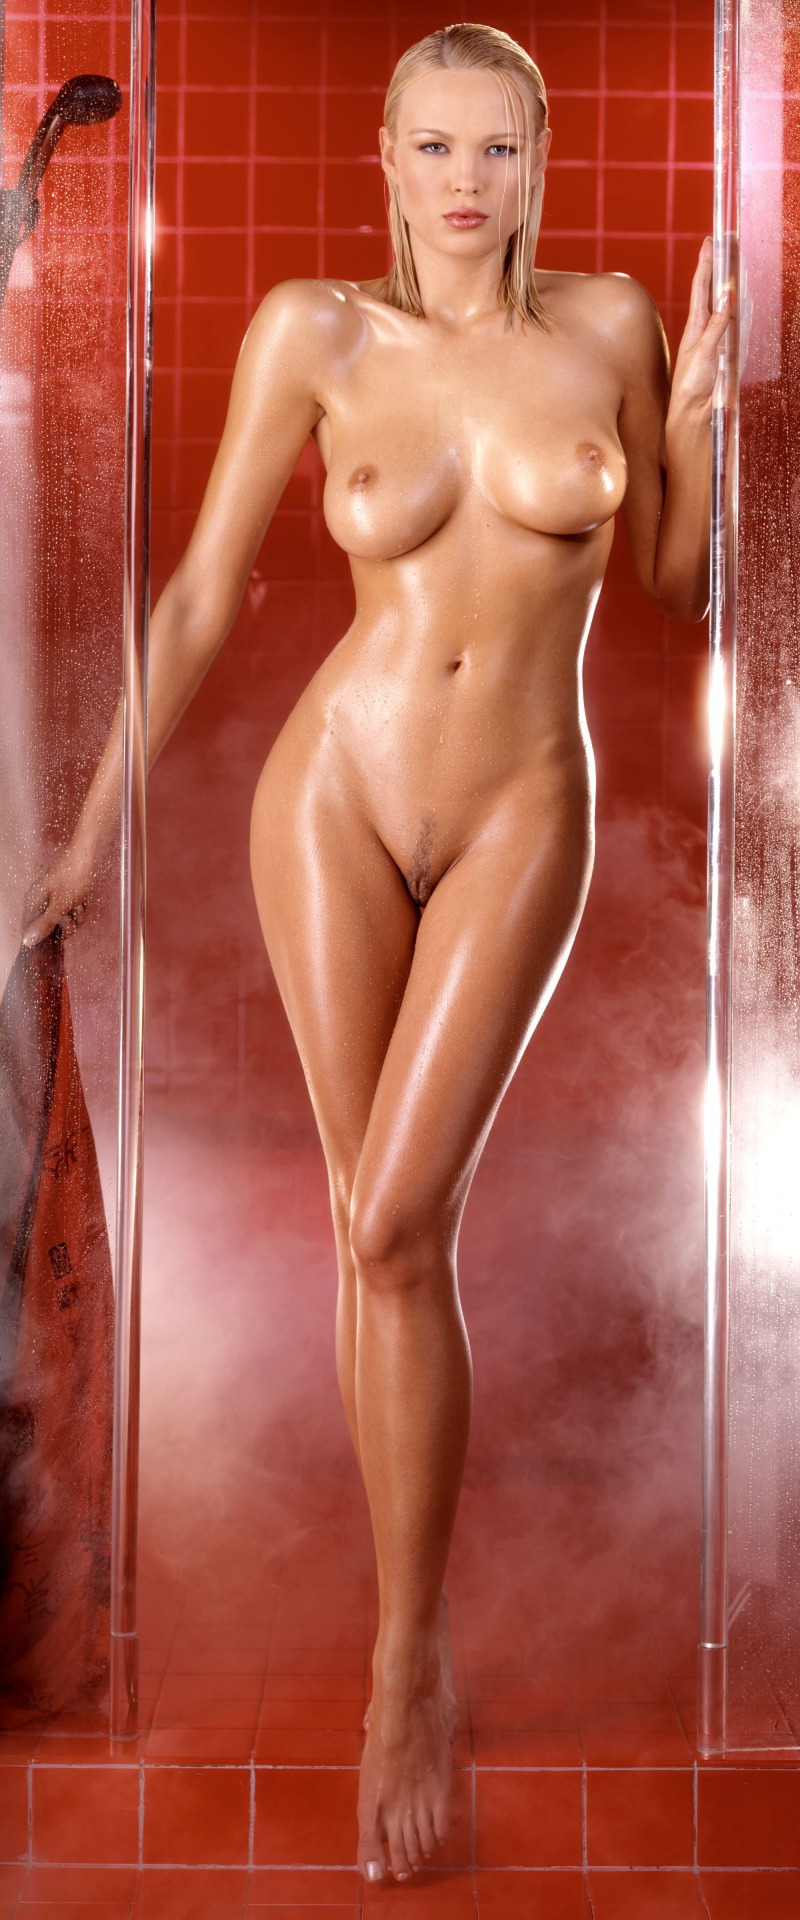 showing porn images for morning wake up gif porn Playboy, Playmate, Luana, Playing, Provocante